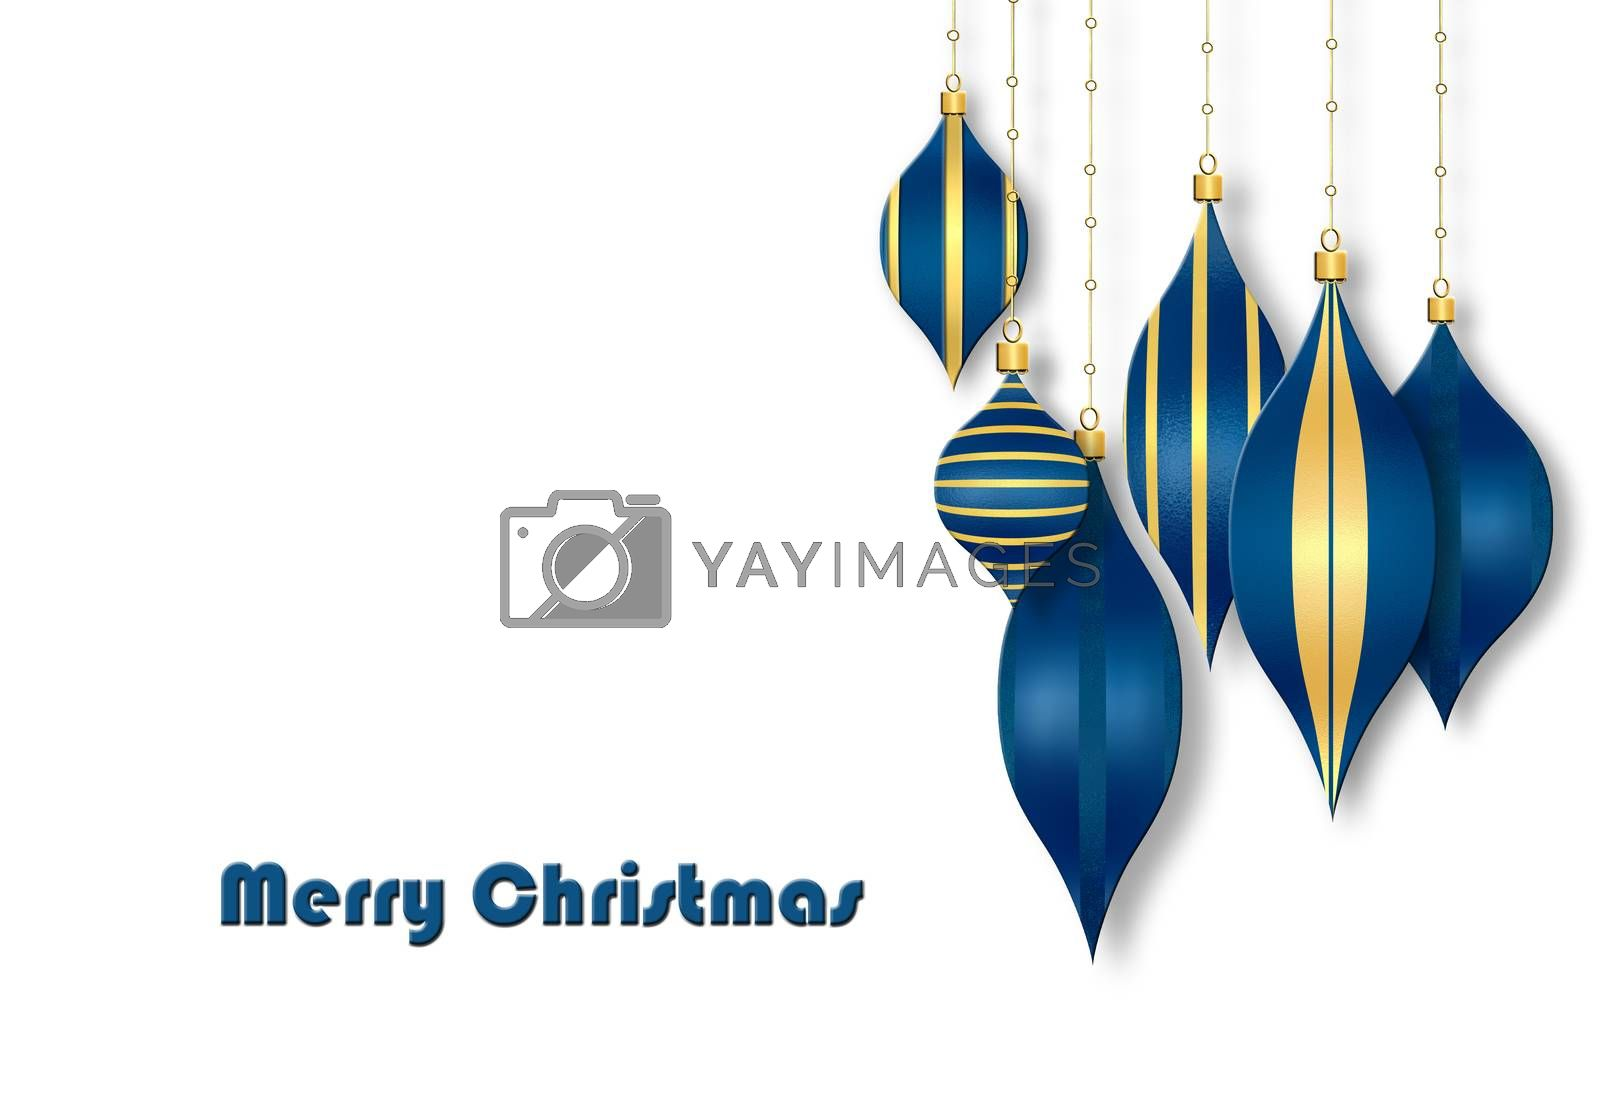 Christmas 3D illustration on white background. Text Merry Christmas, blue baubles and balls with gold ornament.